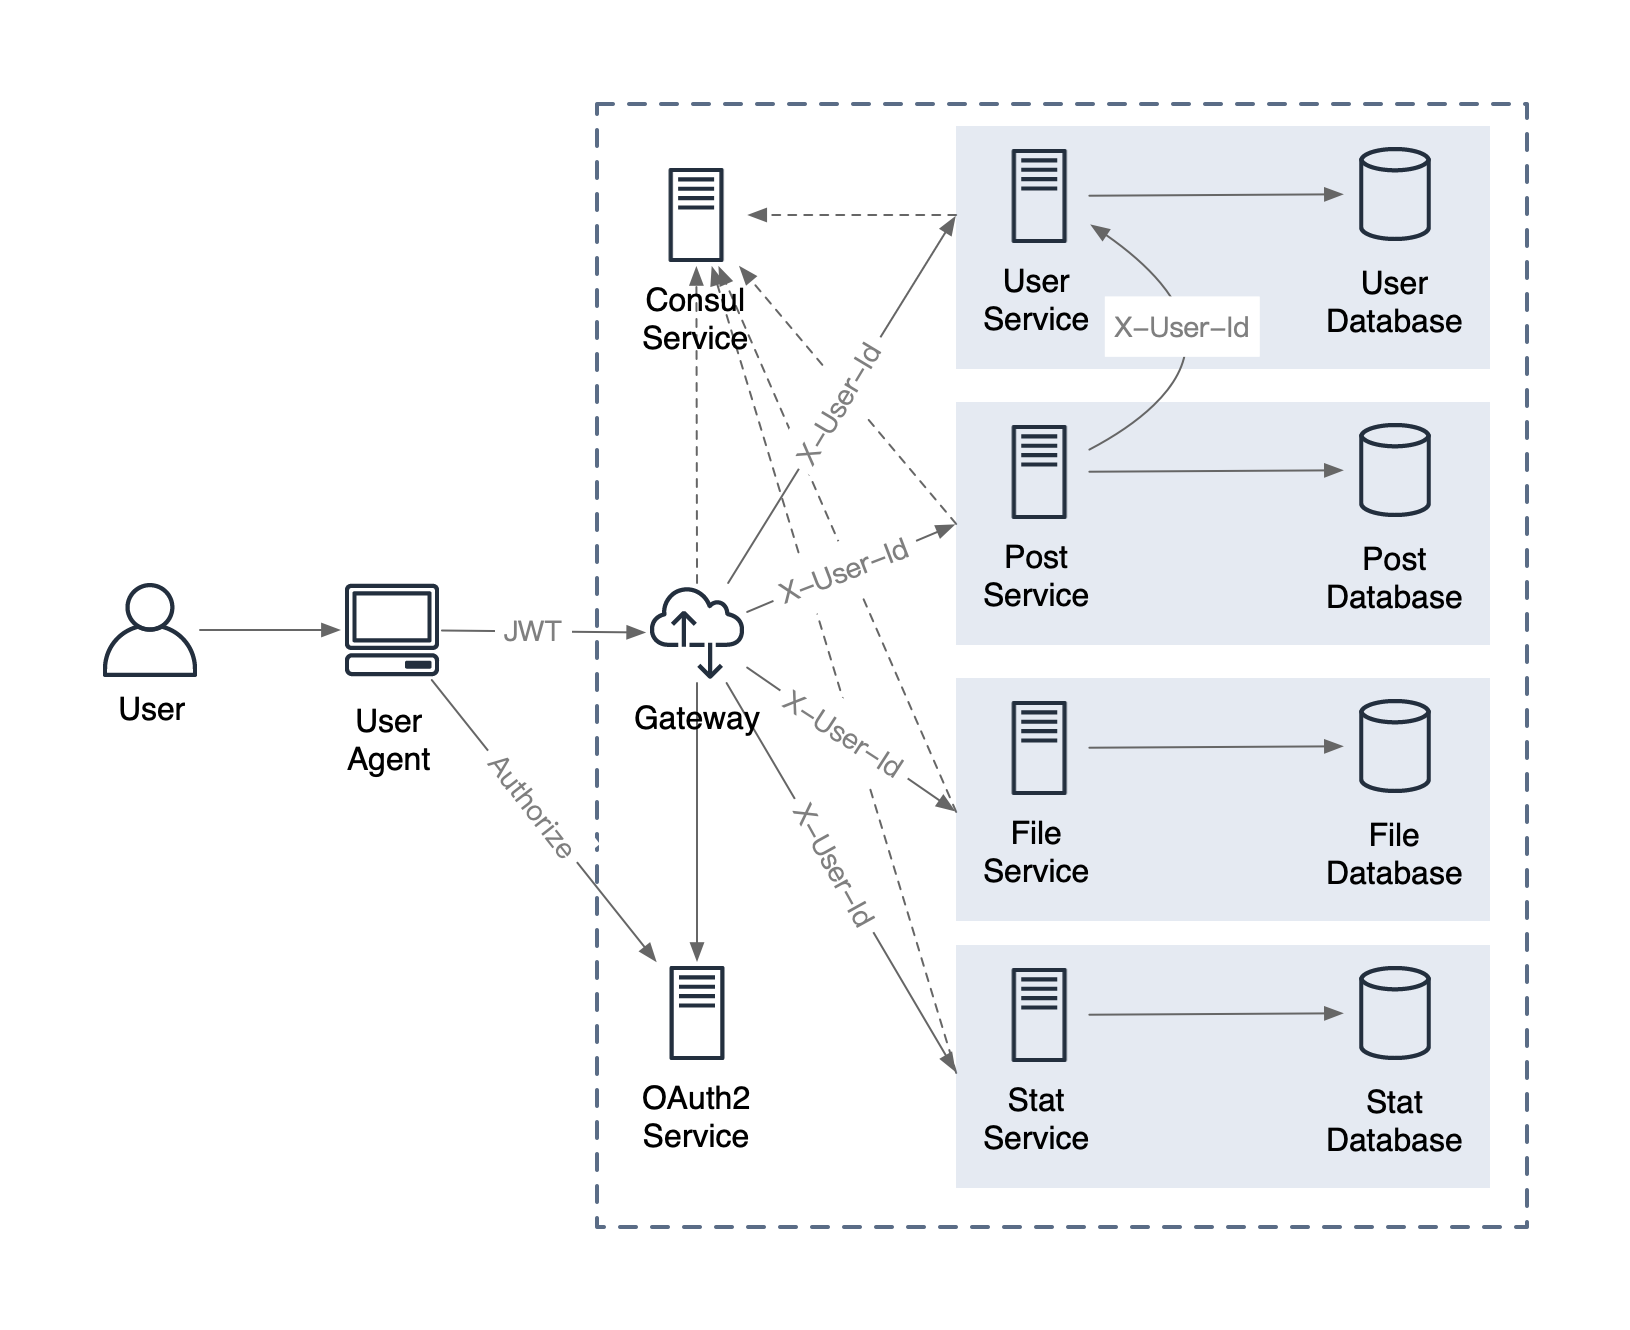 spring-cloud-micro-service-with-oauth2-architecture-1